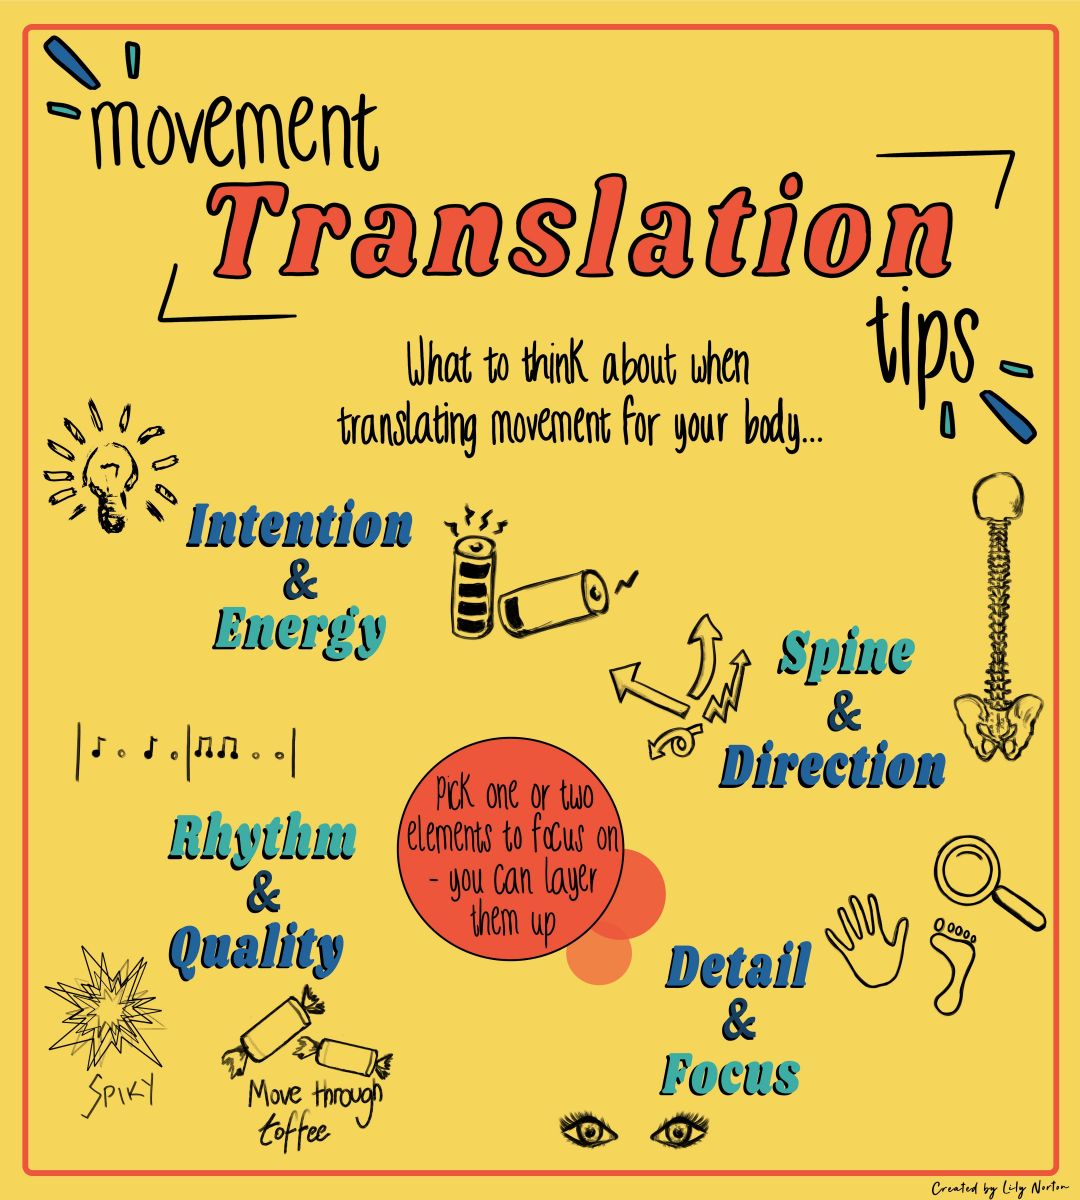 Illustration of the movement translation tool with tips what to think about when translating movement for bodies with different physicalities.